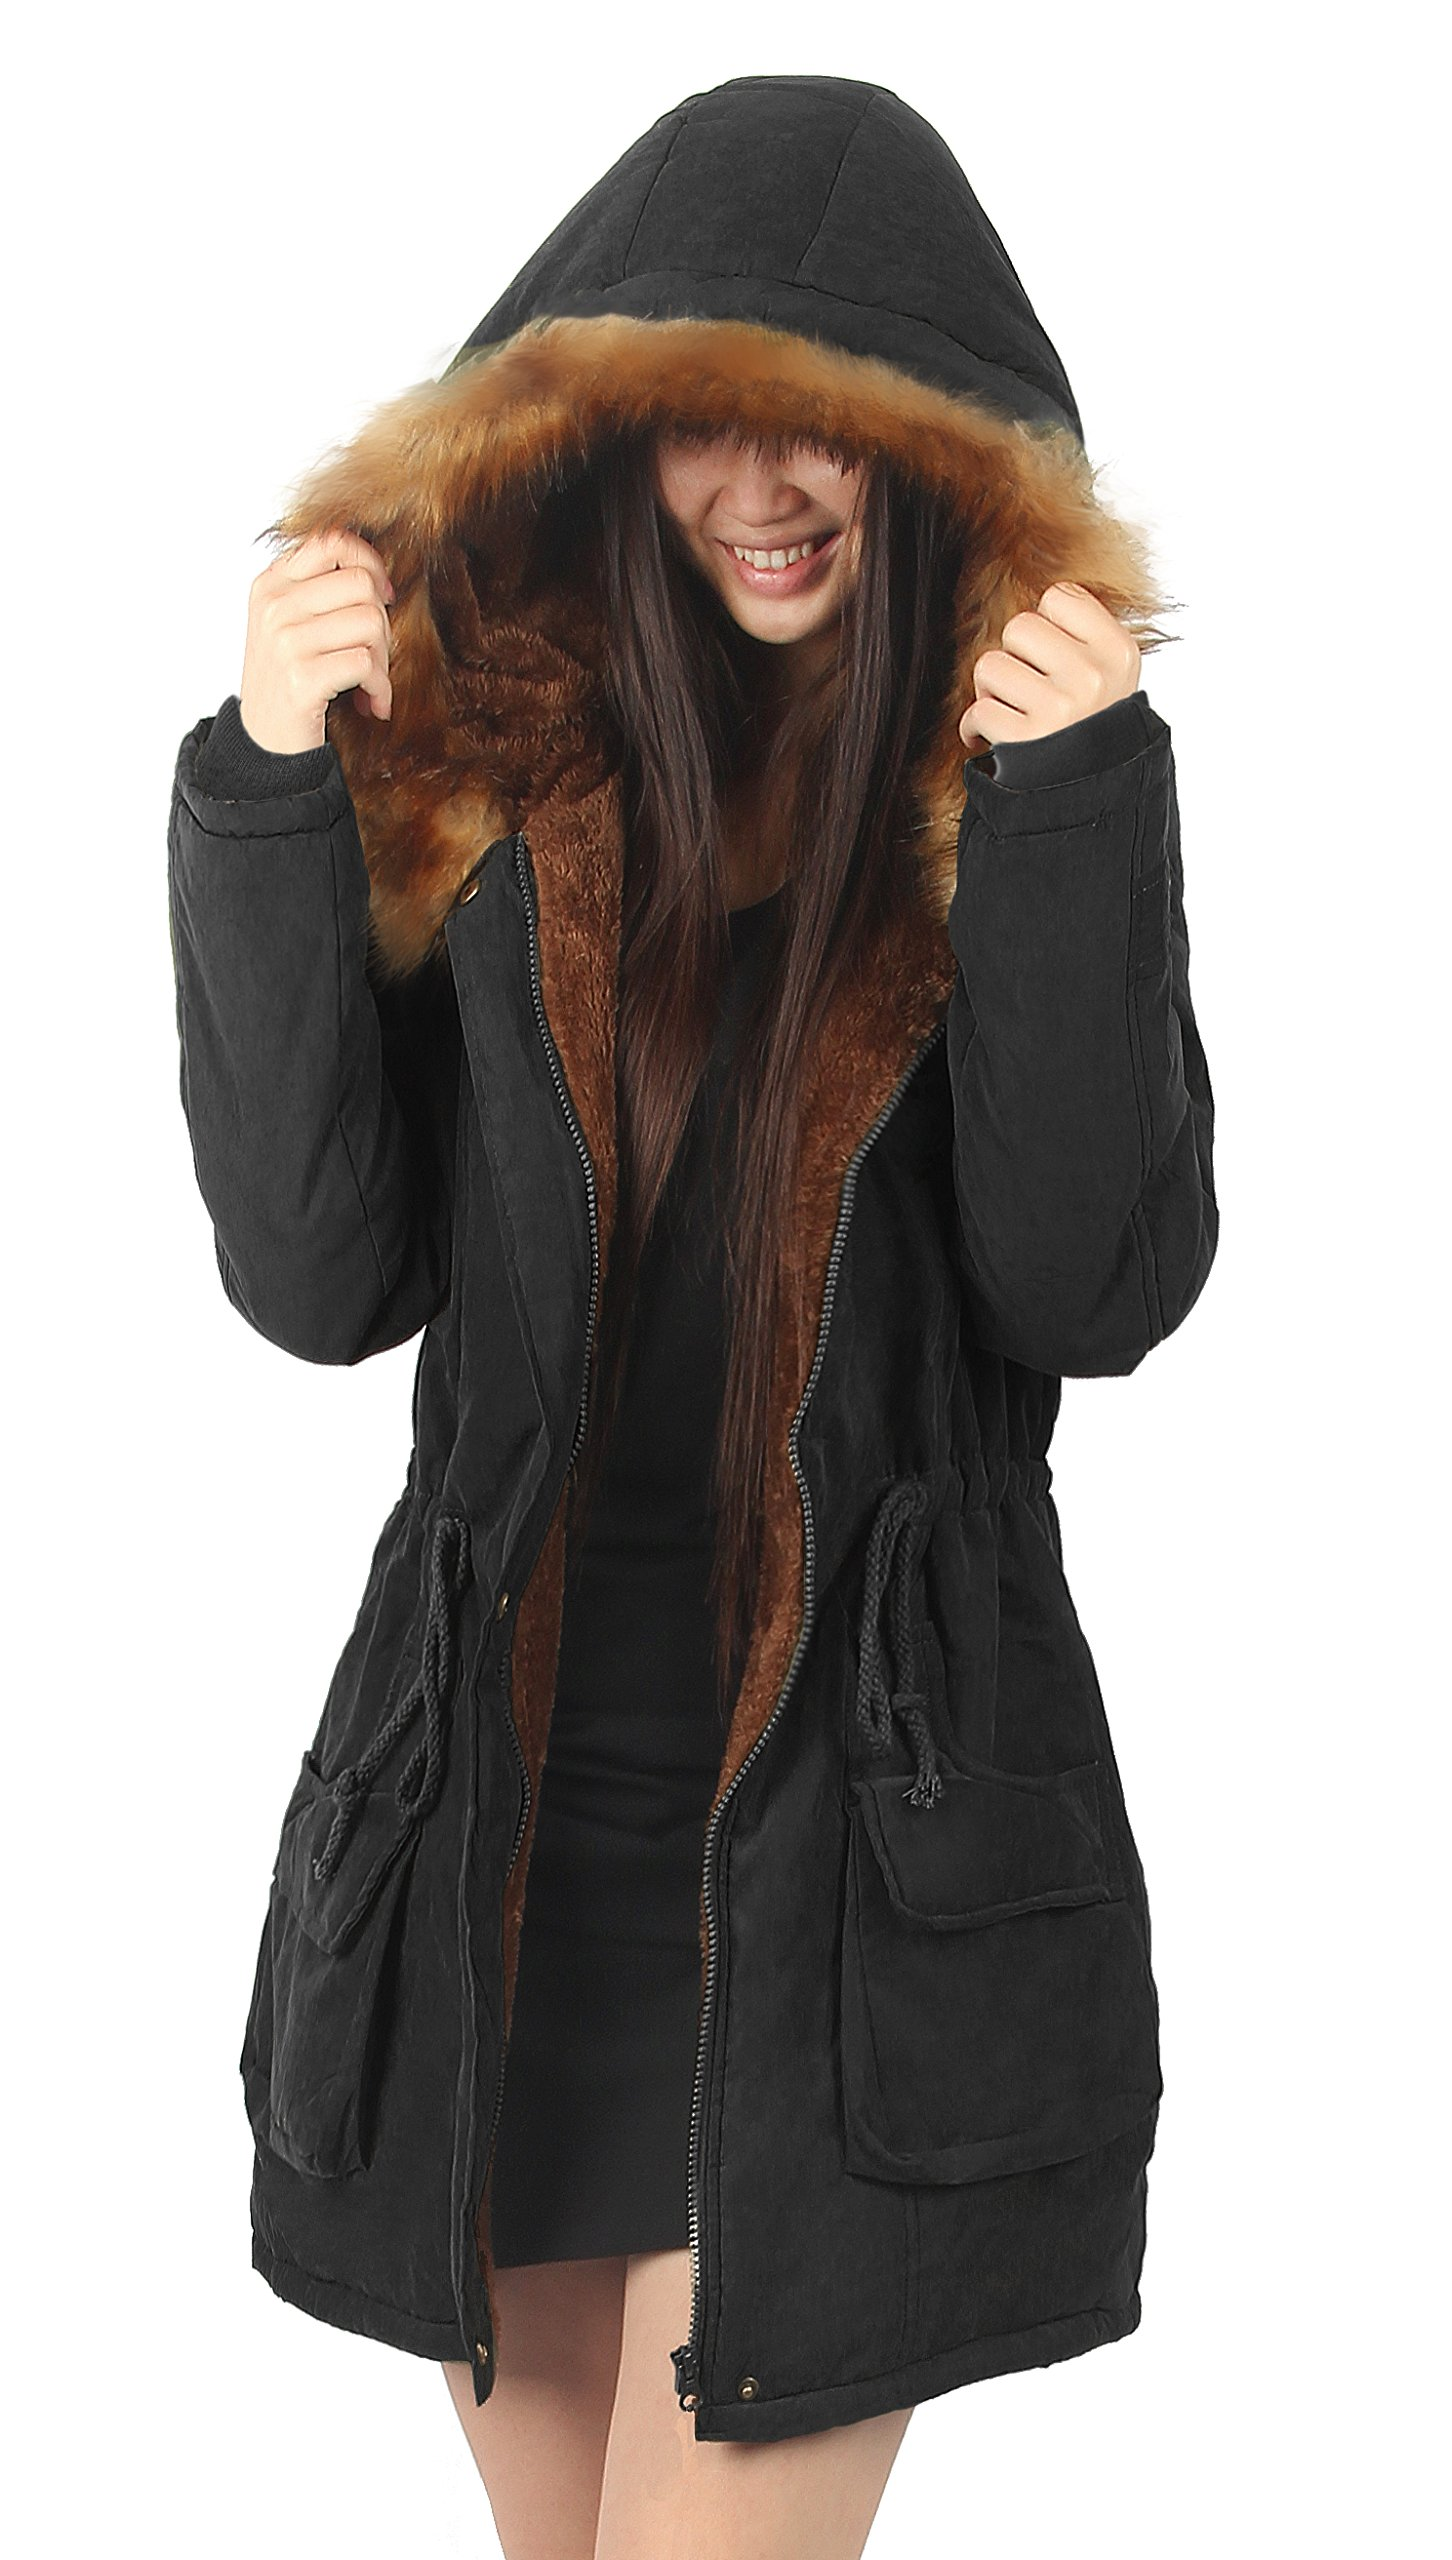 cdf0305db8 iLoveSIA Womens Hooded Warm Coats Parkas with Faux Fur Jackets product image